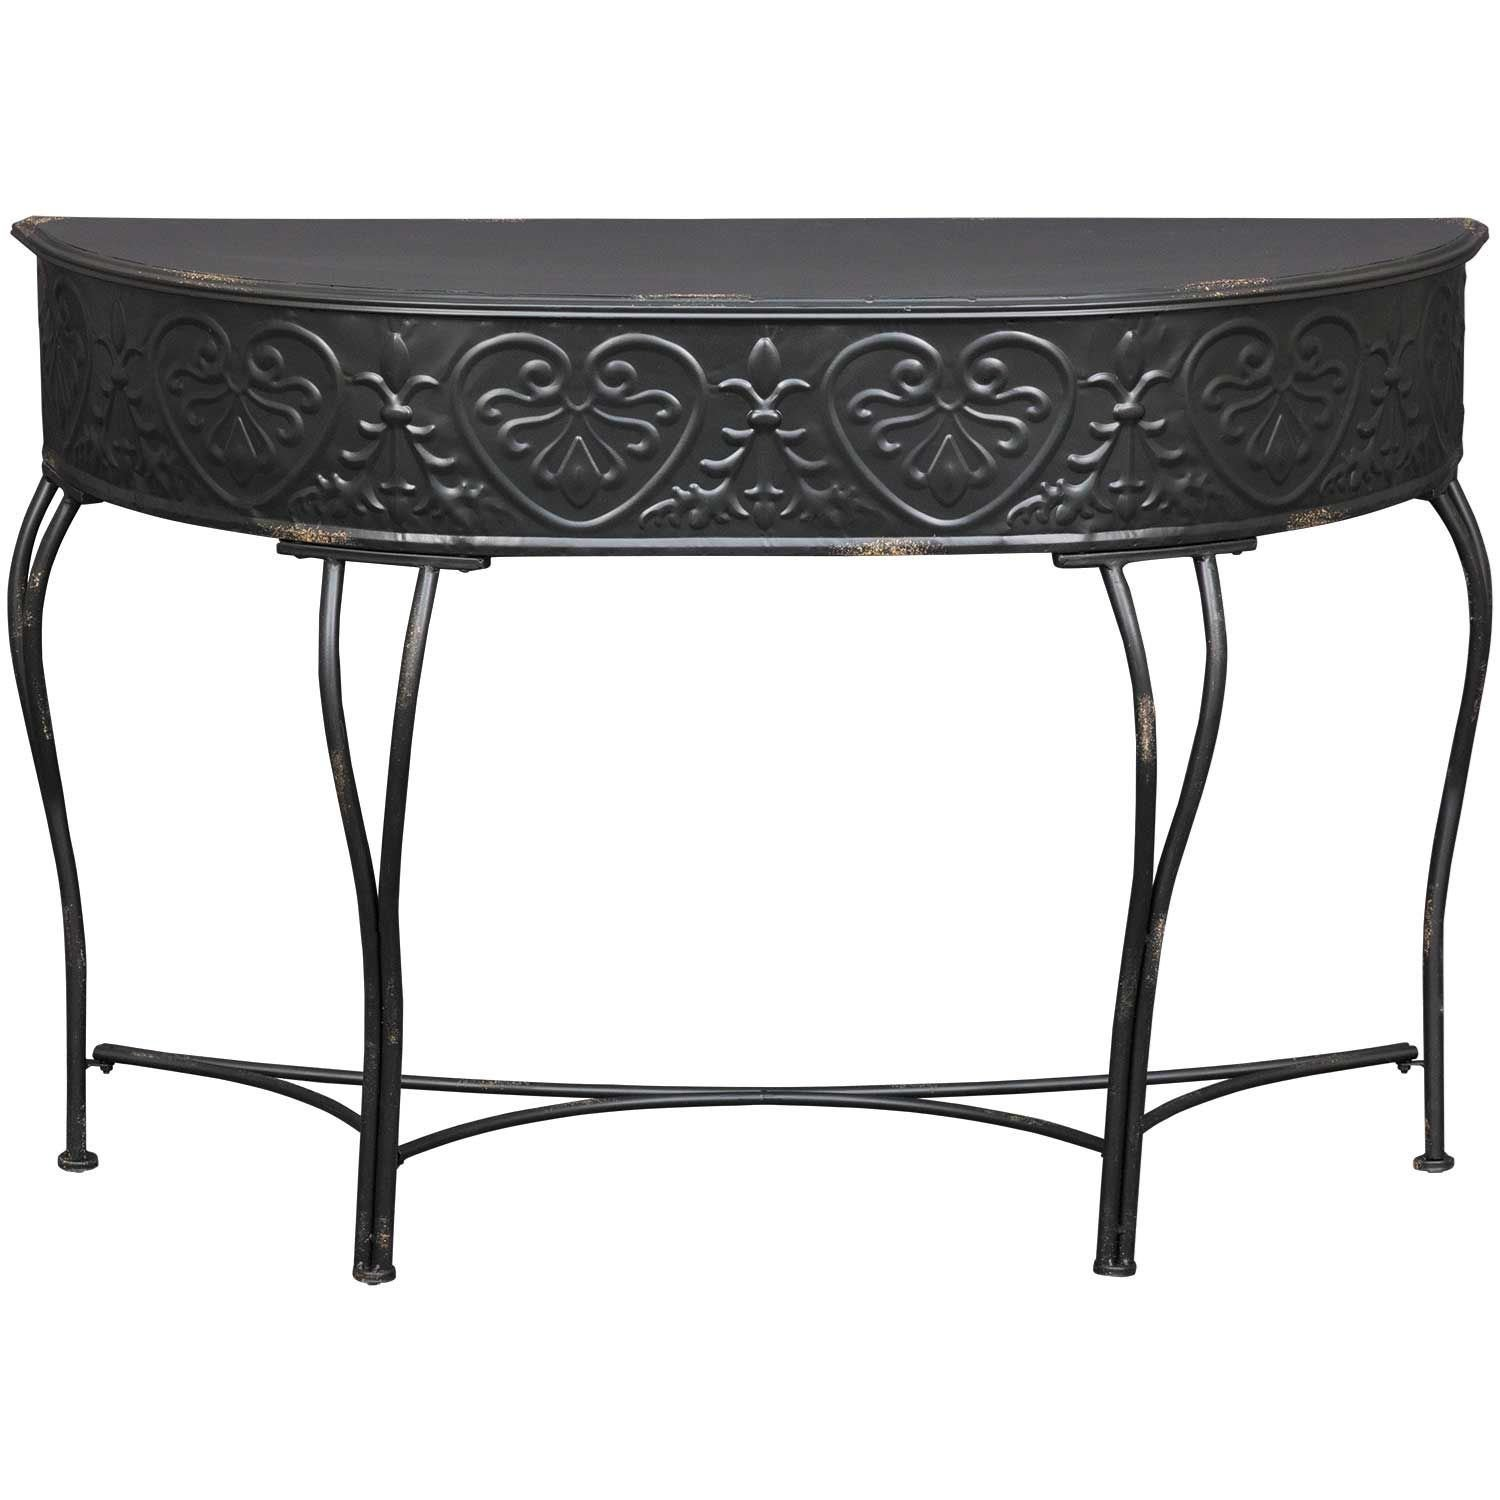 Picture of Curved Console Table